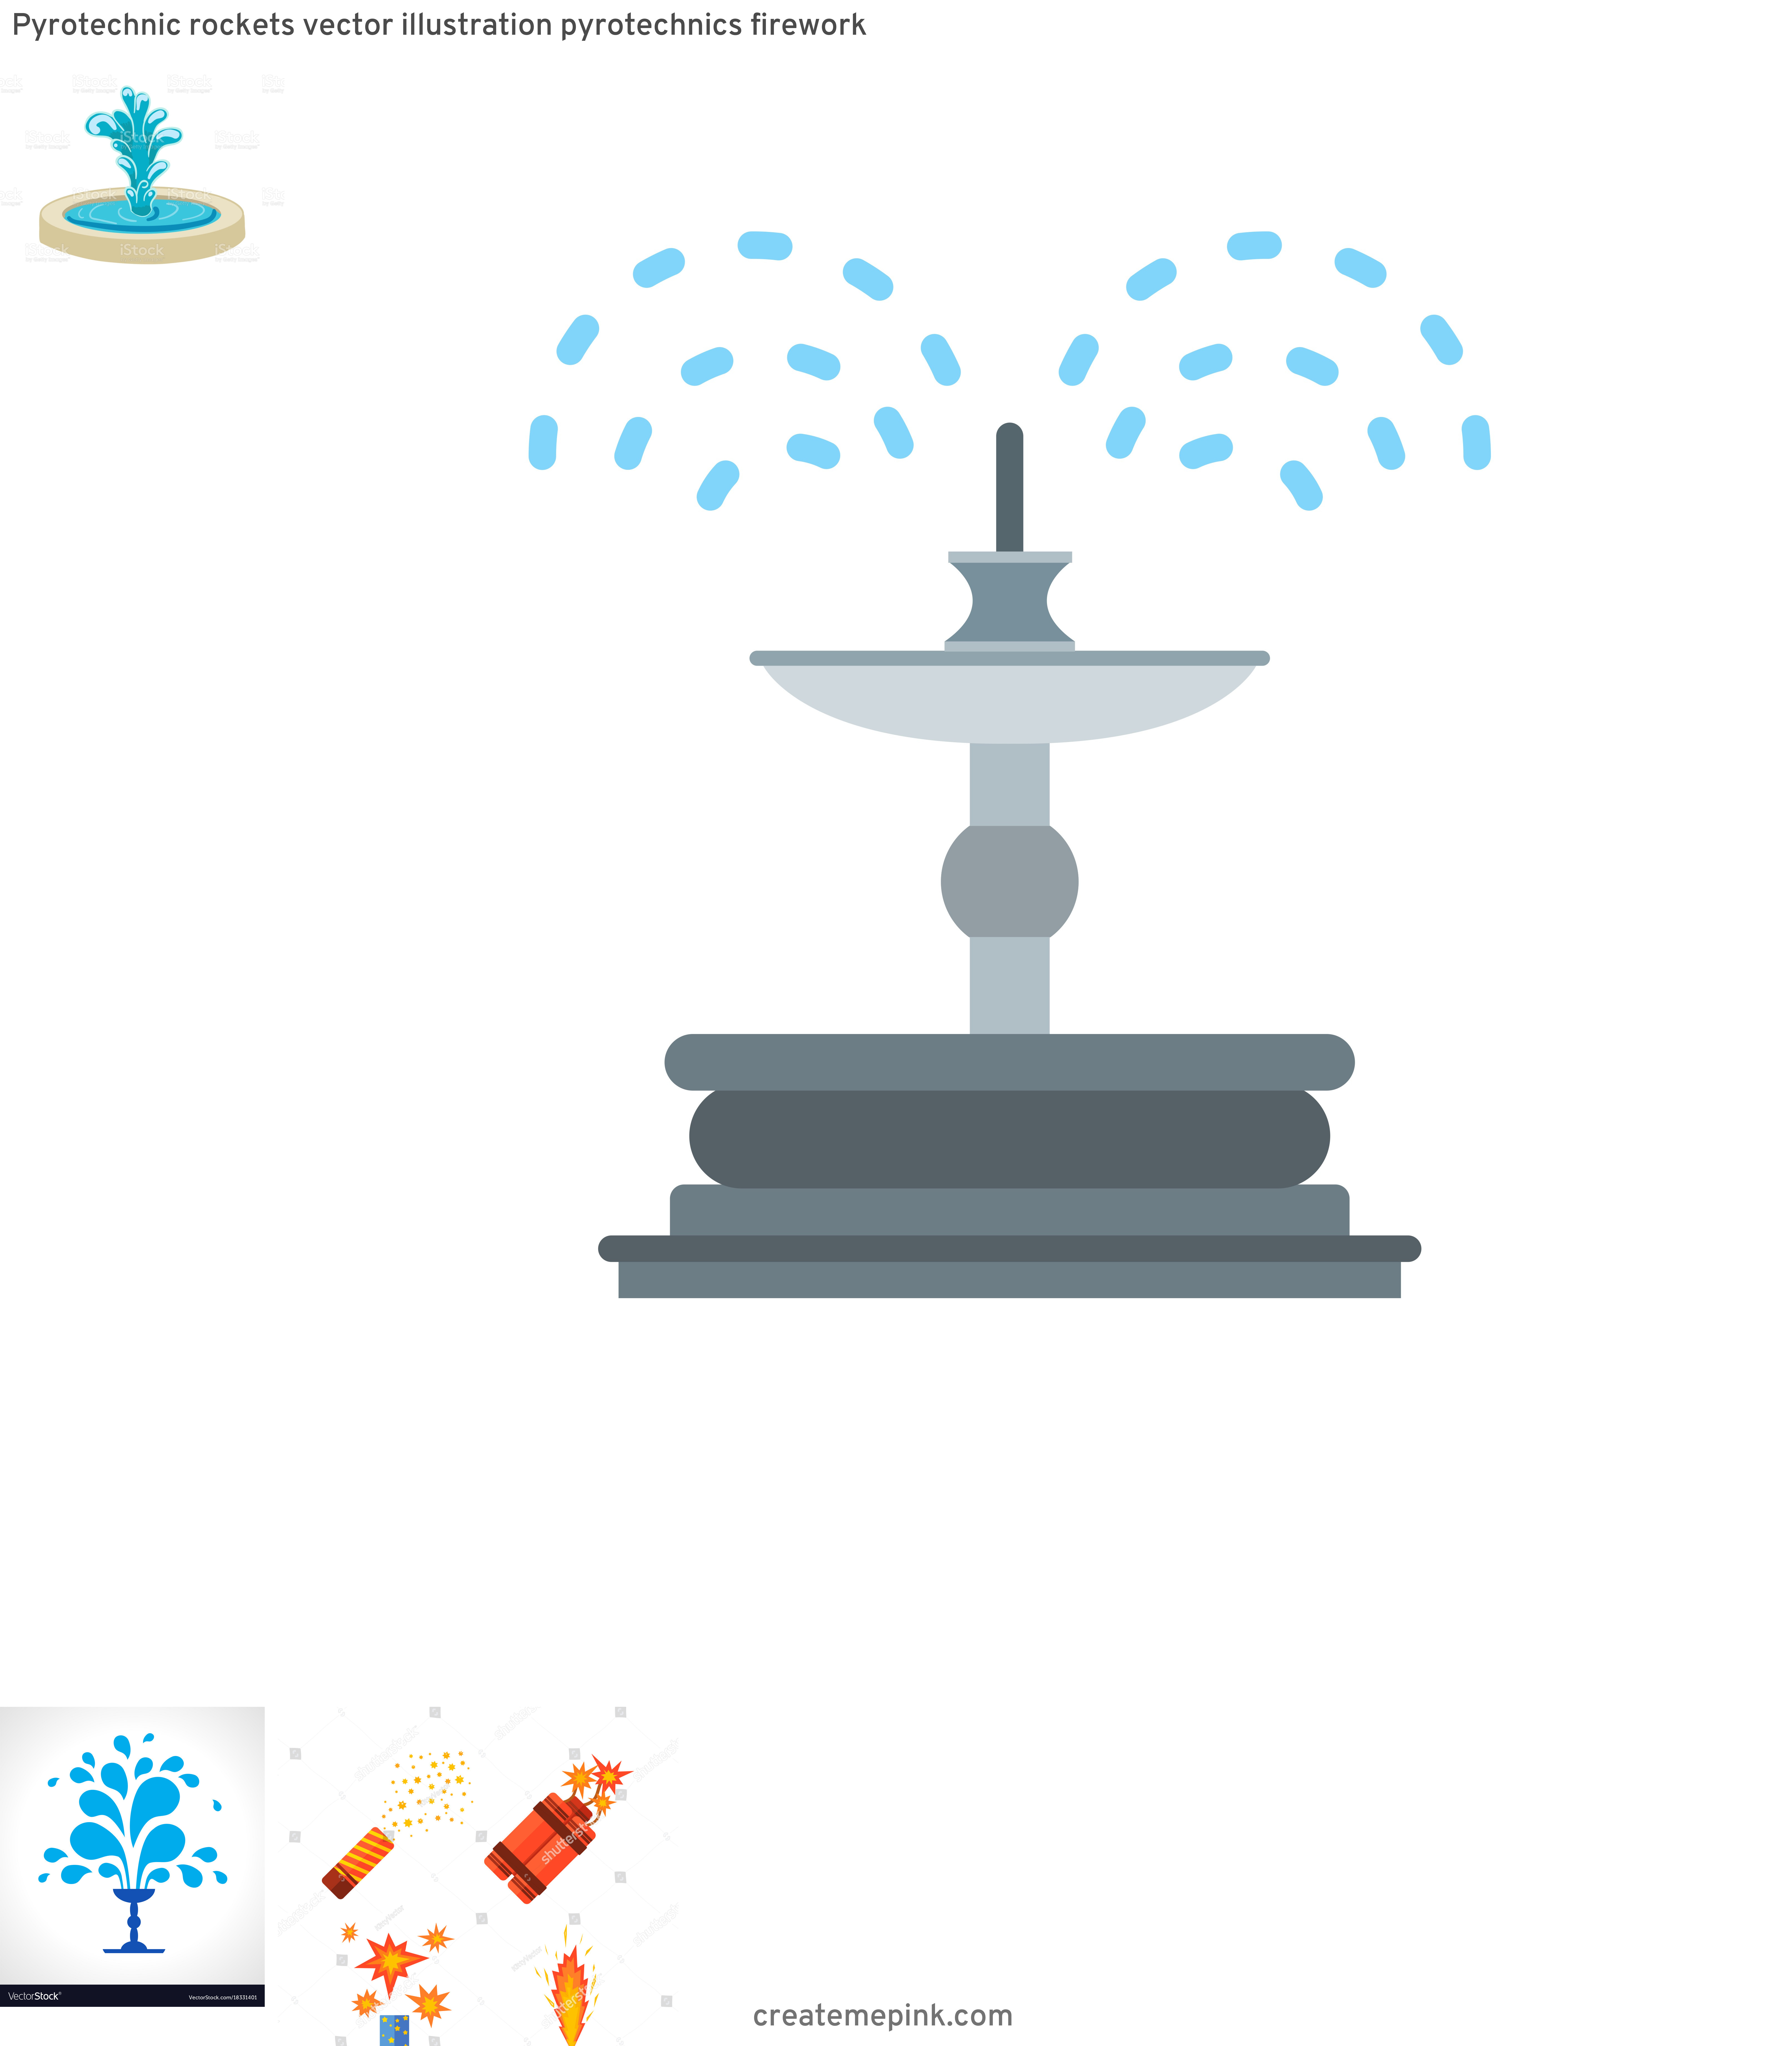 Pretty Fountain Vectors: Pyrotechnic Rockets Vector Illustration Pyrotechnics Firework